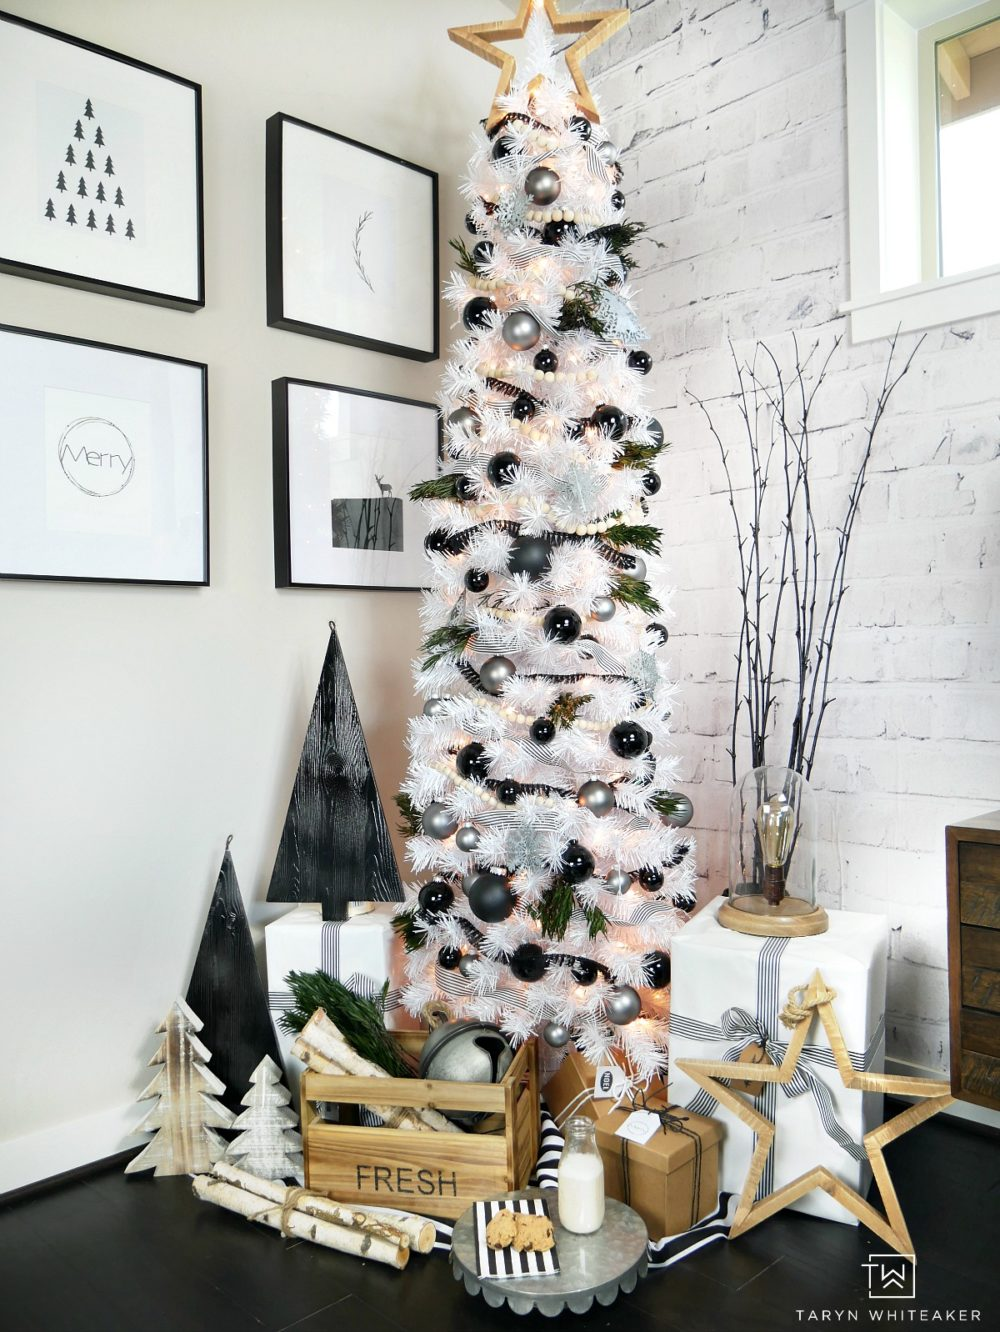 modern black white. Taryn Creates This Modern Black And White Christmas Tree Display In Her Home Using A Tall